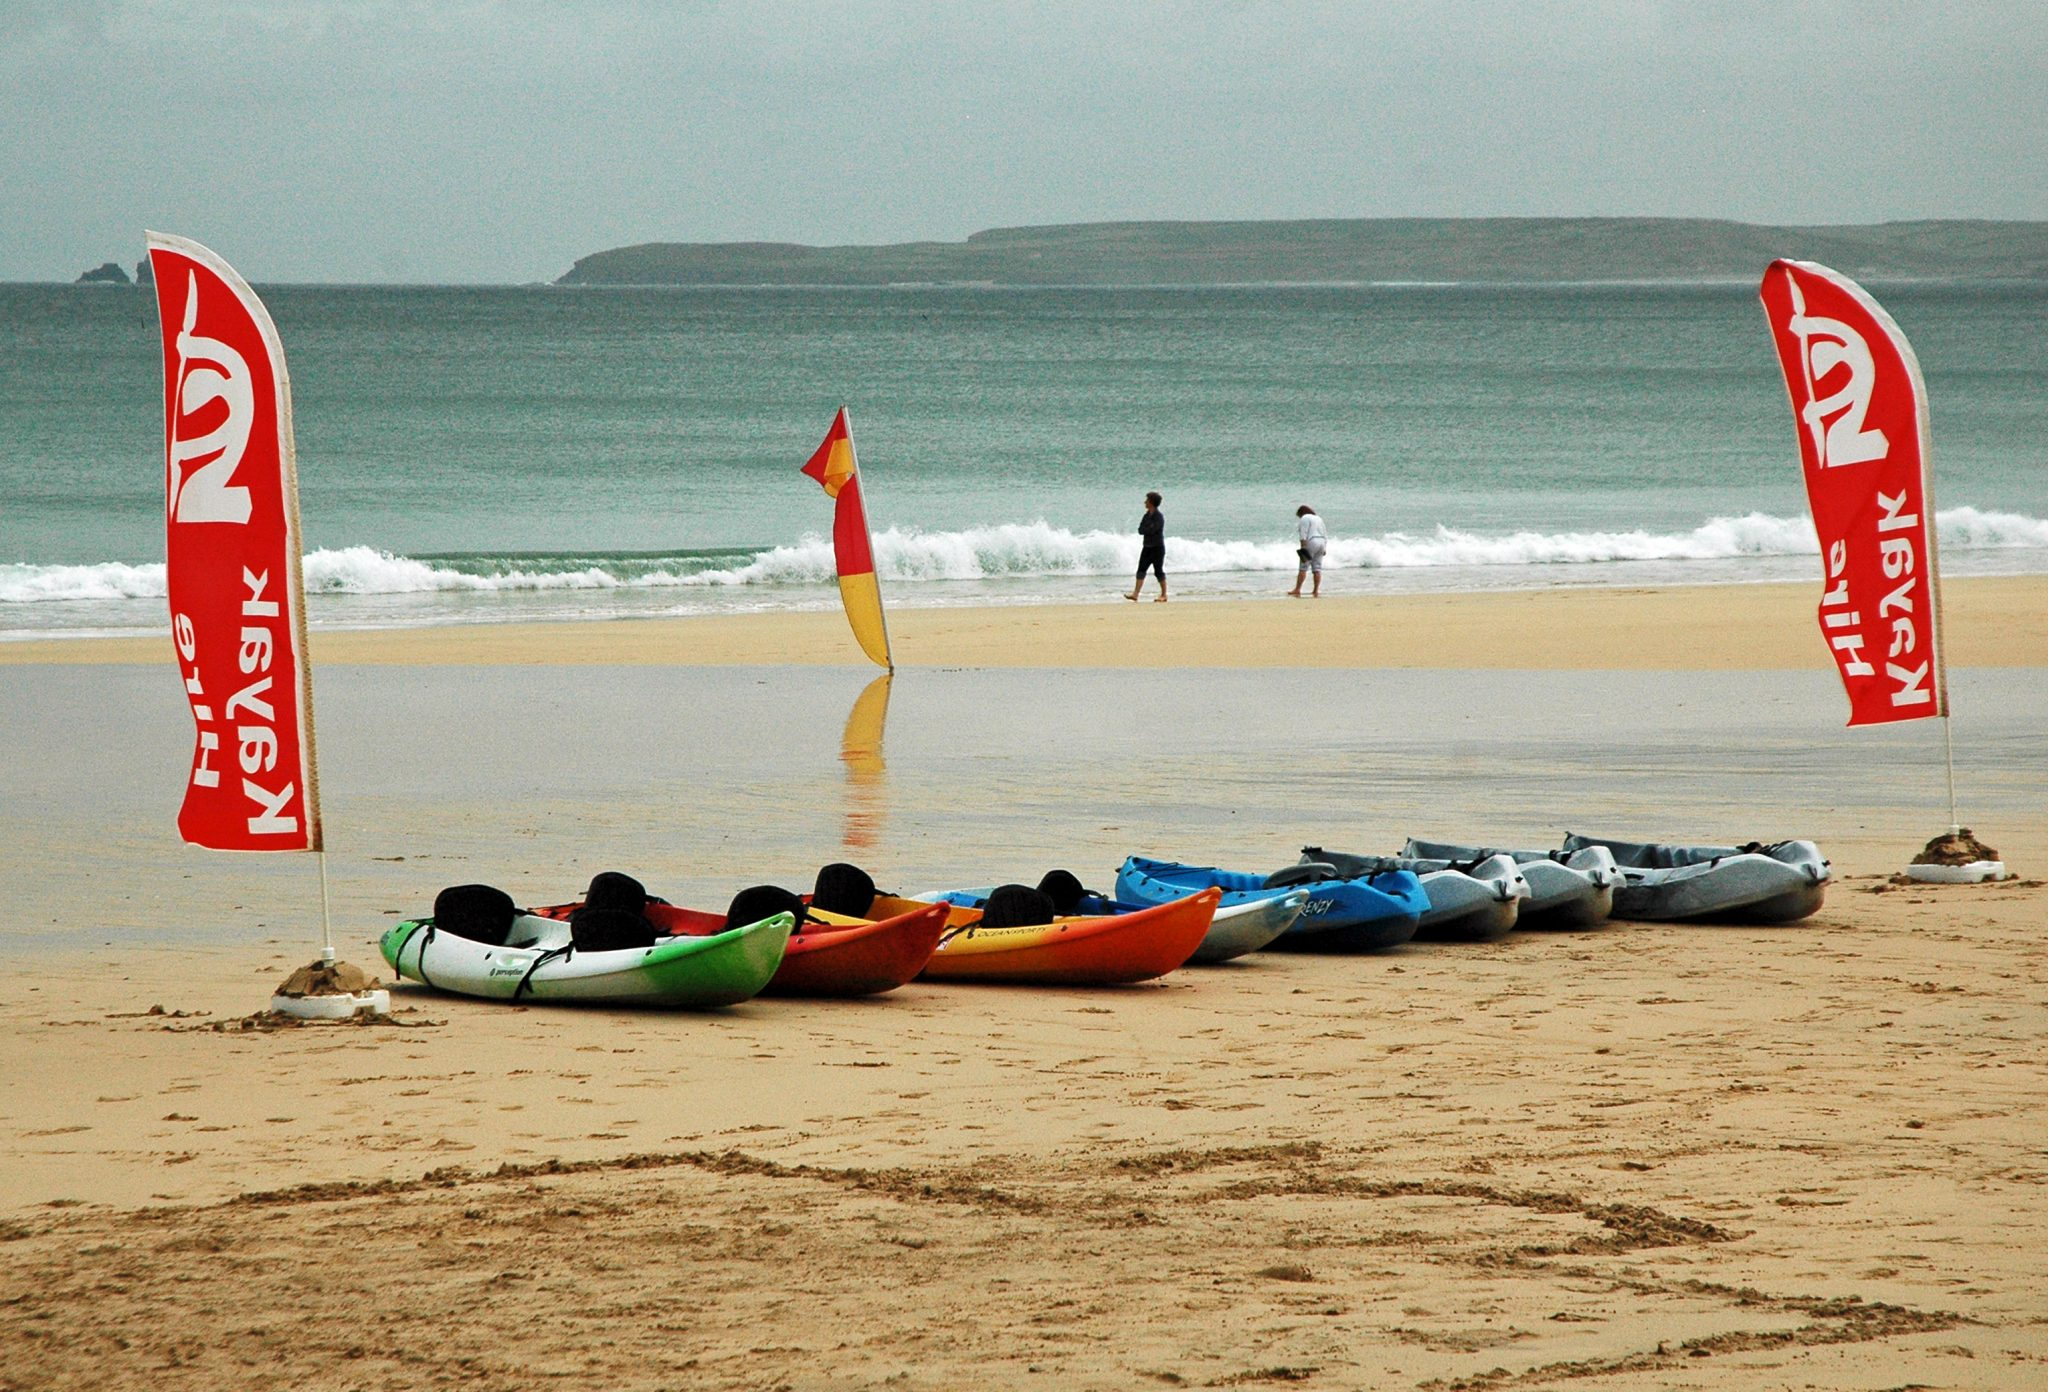 A colourful line up of kayaks offered for hire on Carbis Bay beach by Ocean Sports. www.carbisbayholidays.co.uk